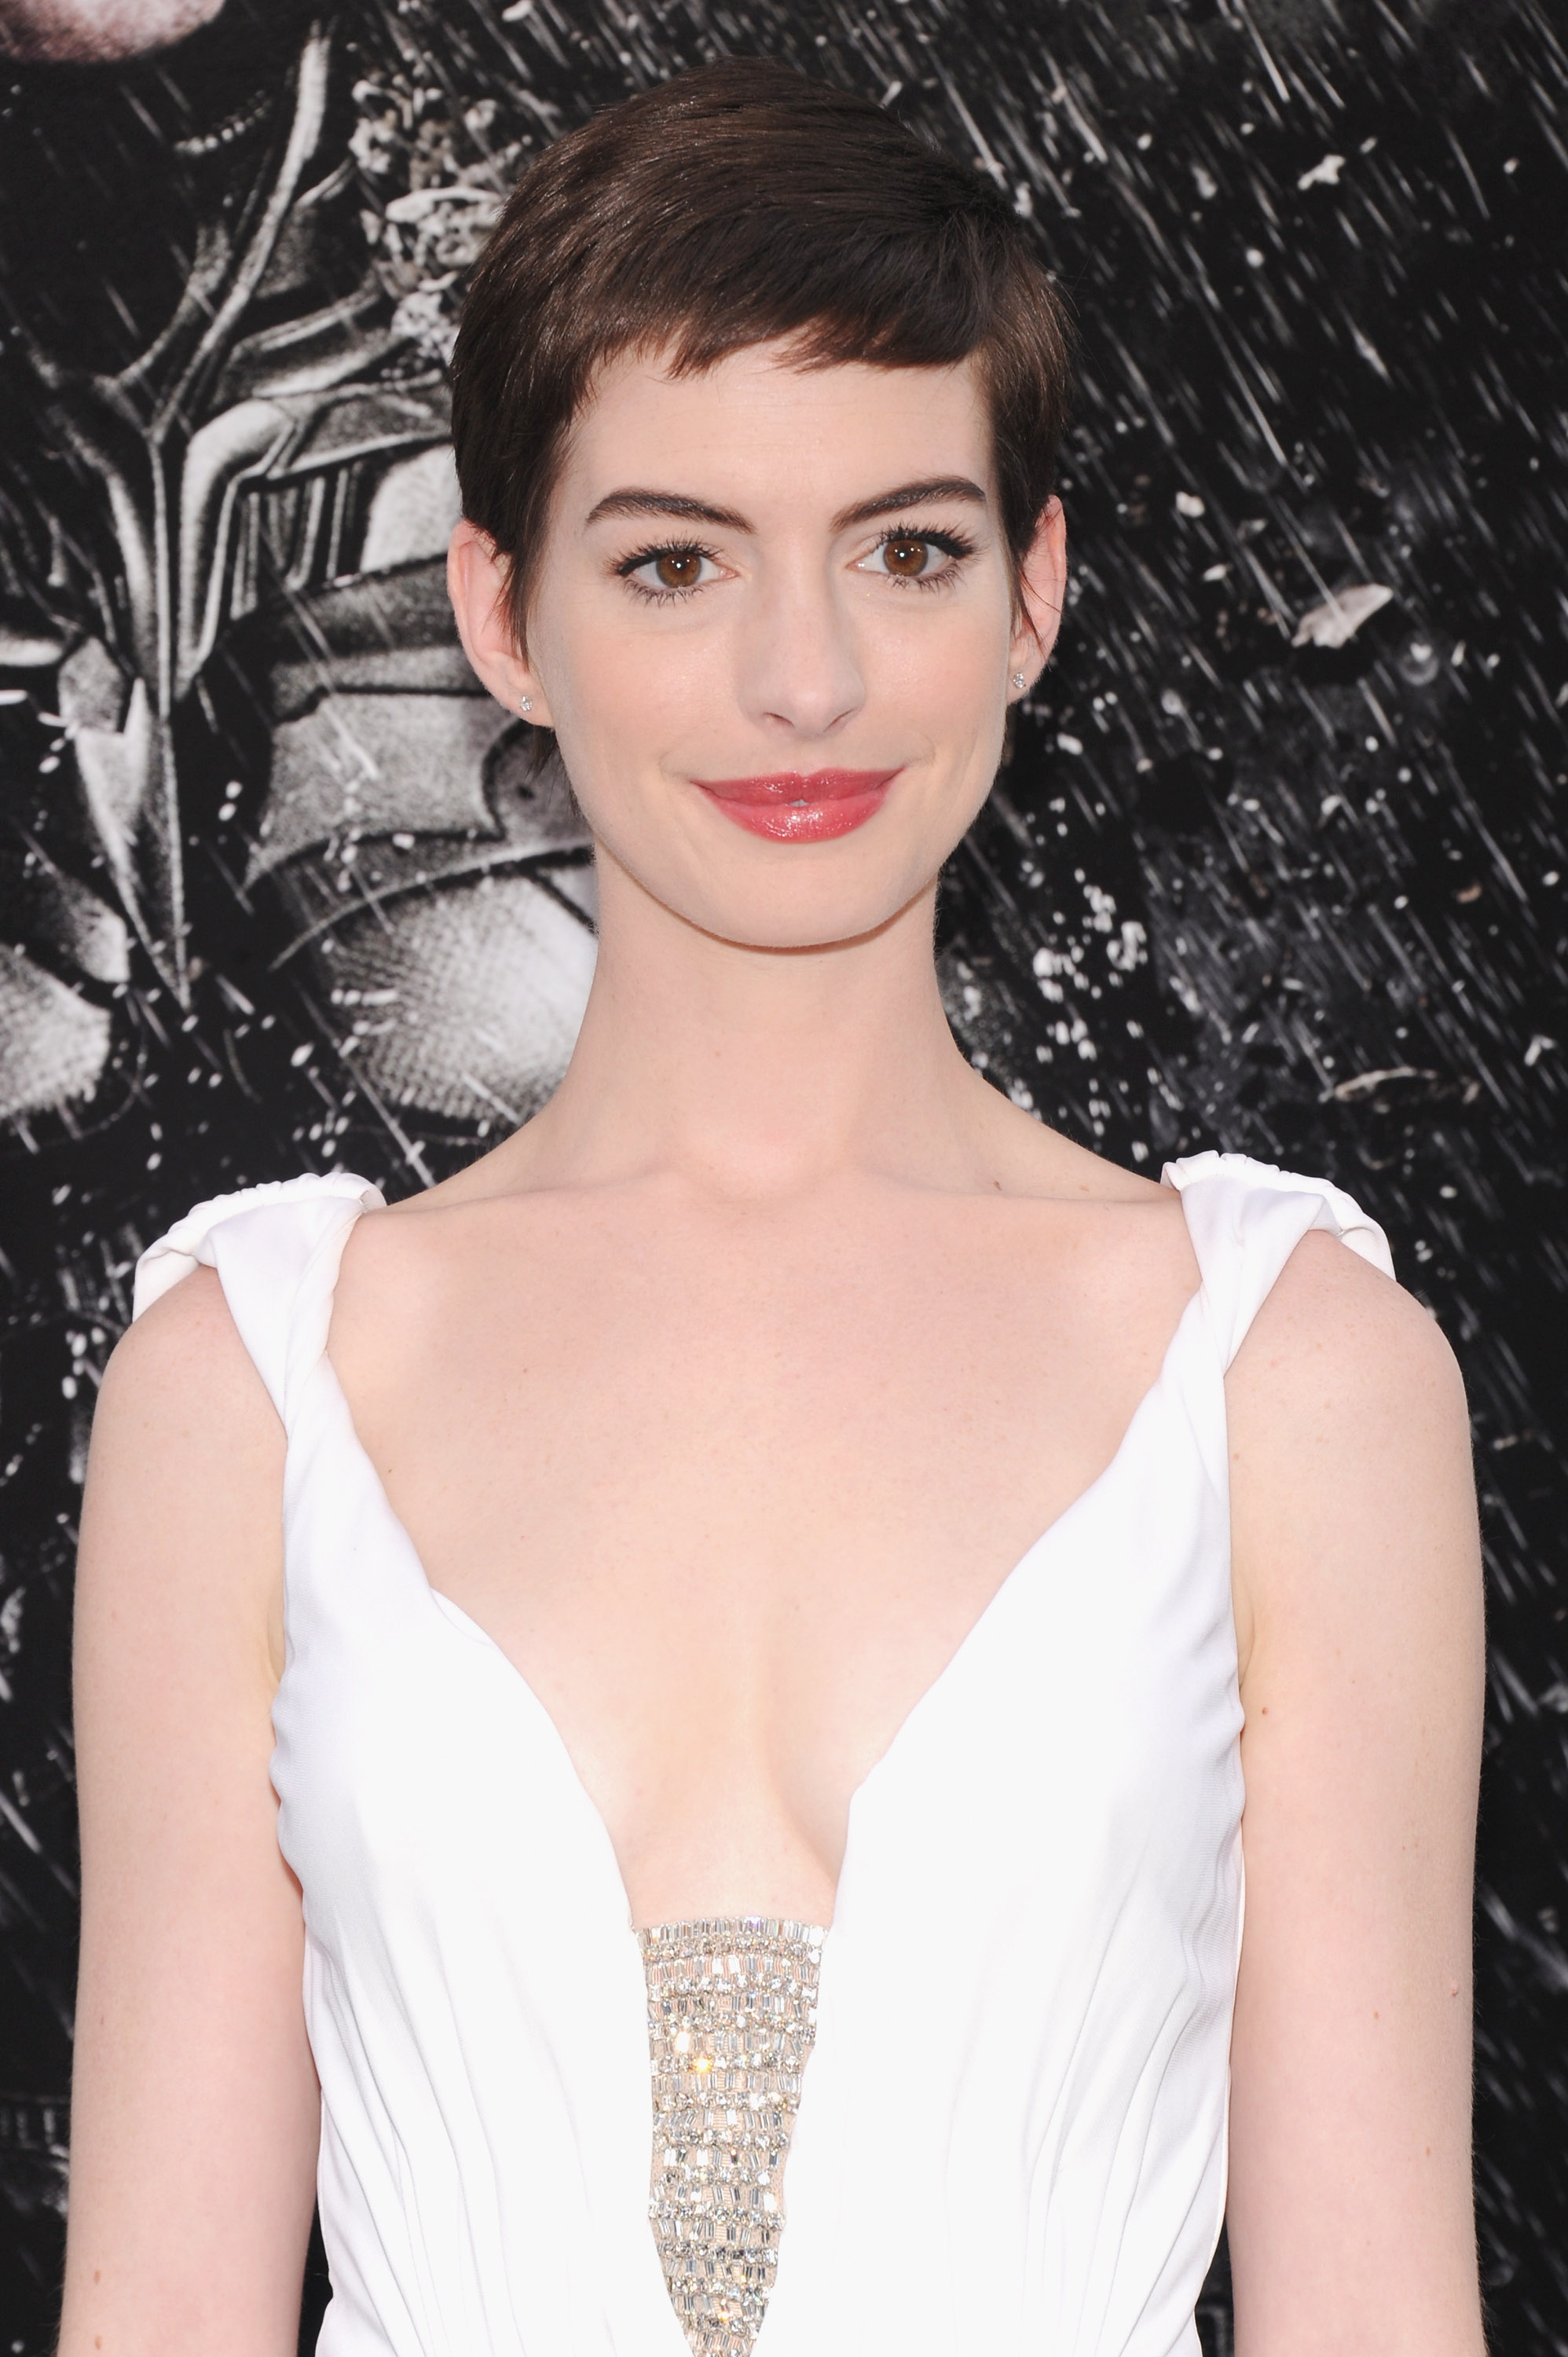 Anne Hathaway Wedding.Anne Hathaway To Donate Portion Of Wedding Photo Profits To Support